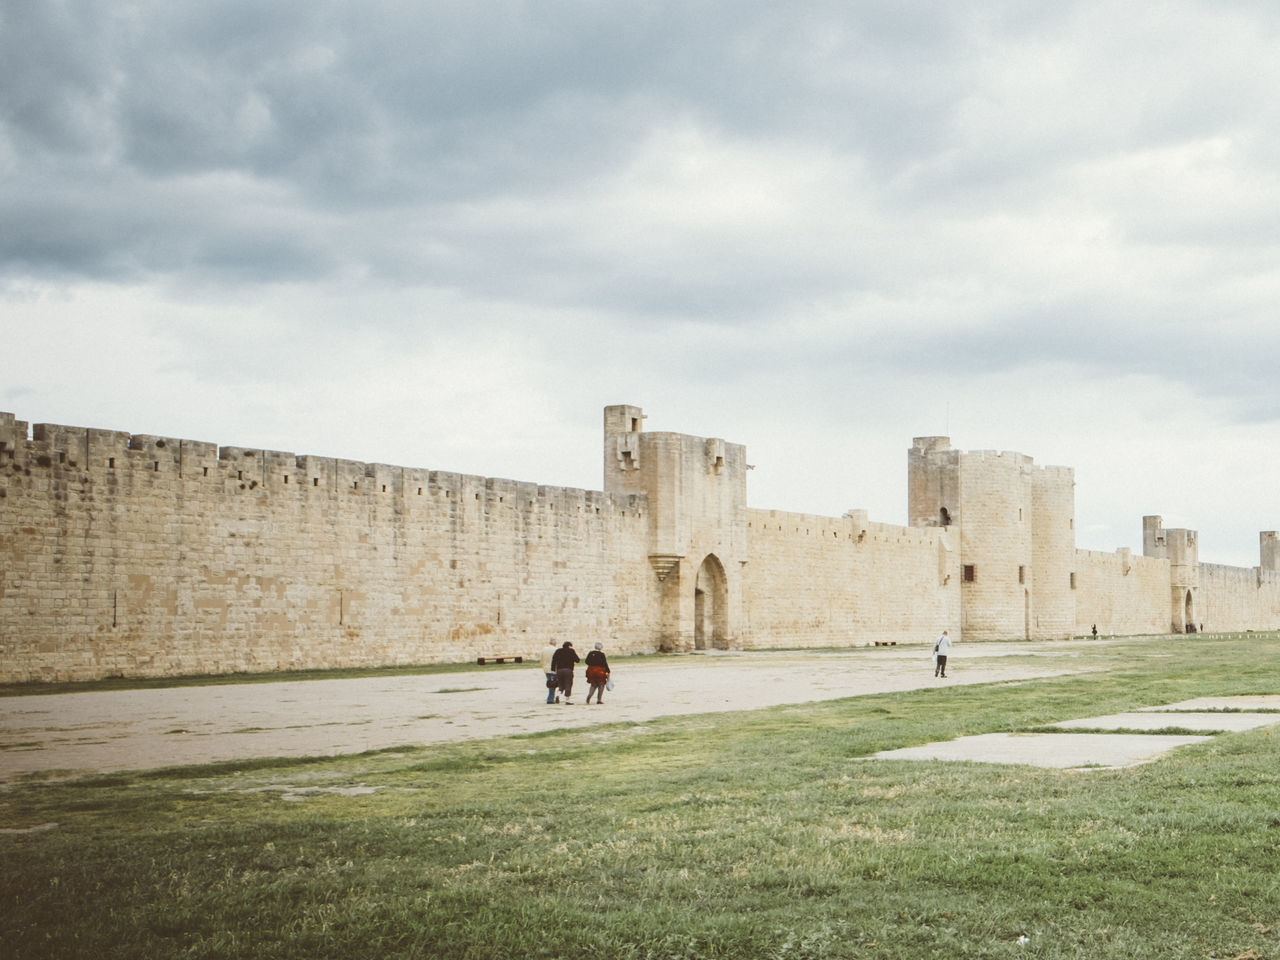 People At Remparts Daigues-Mortes Against Cloudy Sky